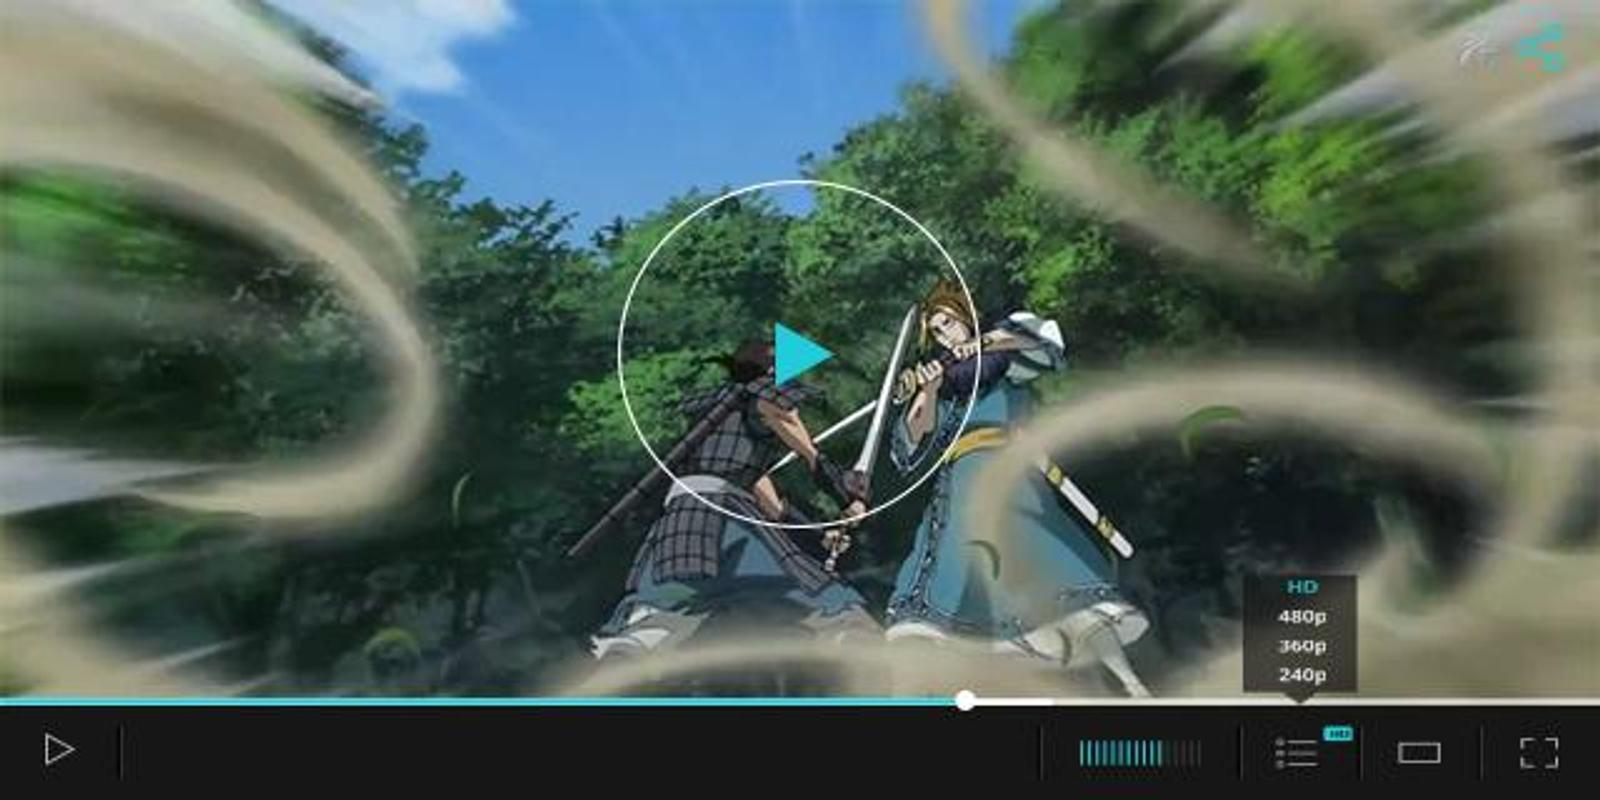 download anime series in 360p